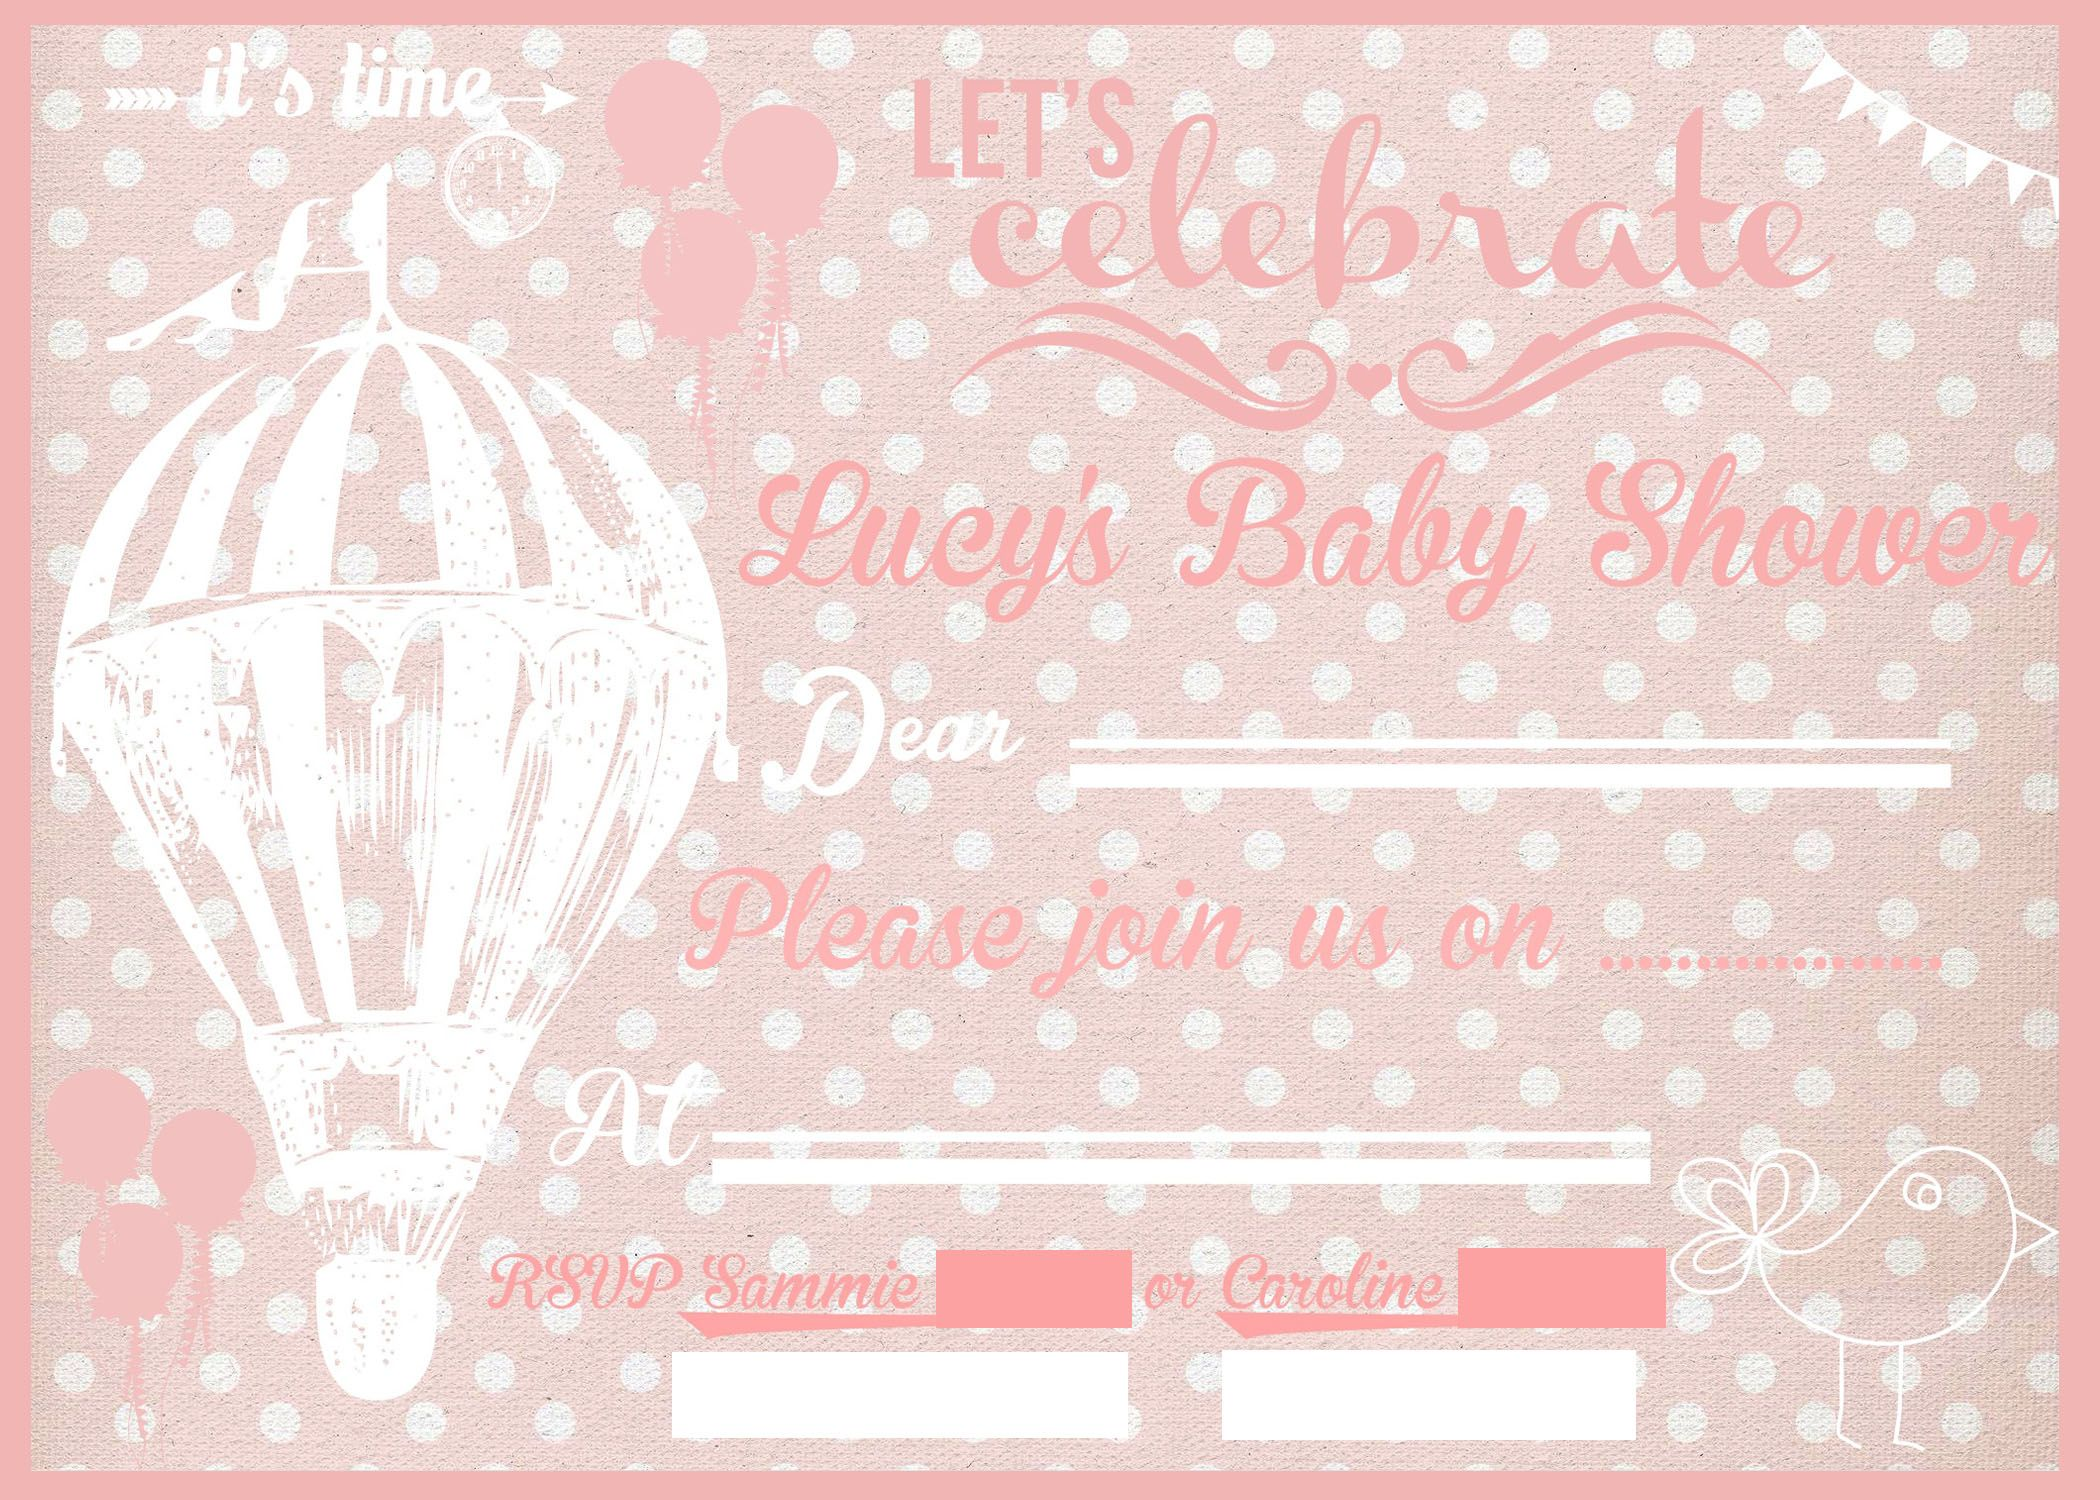 Baby Shower Invite For A Girl Creaed Using Rhonna App And Photoshop